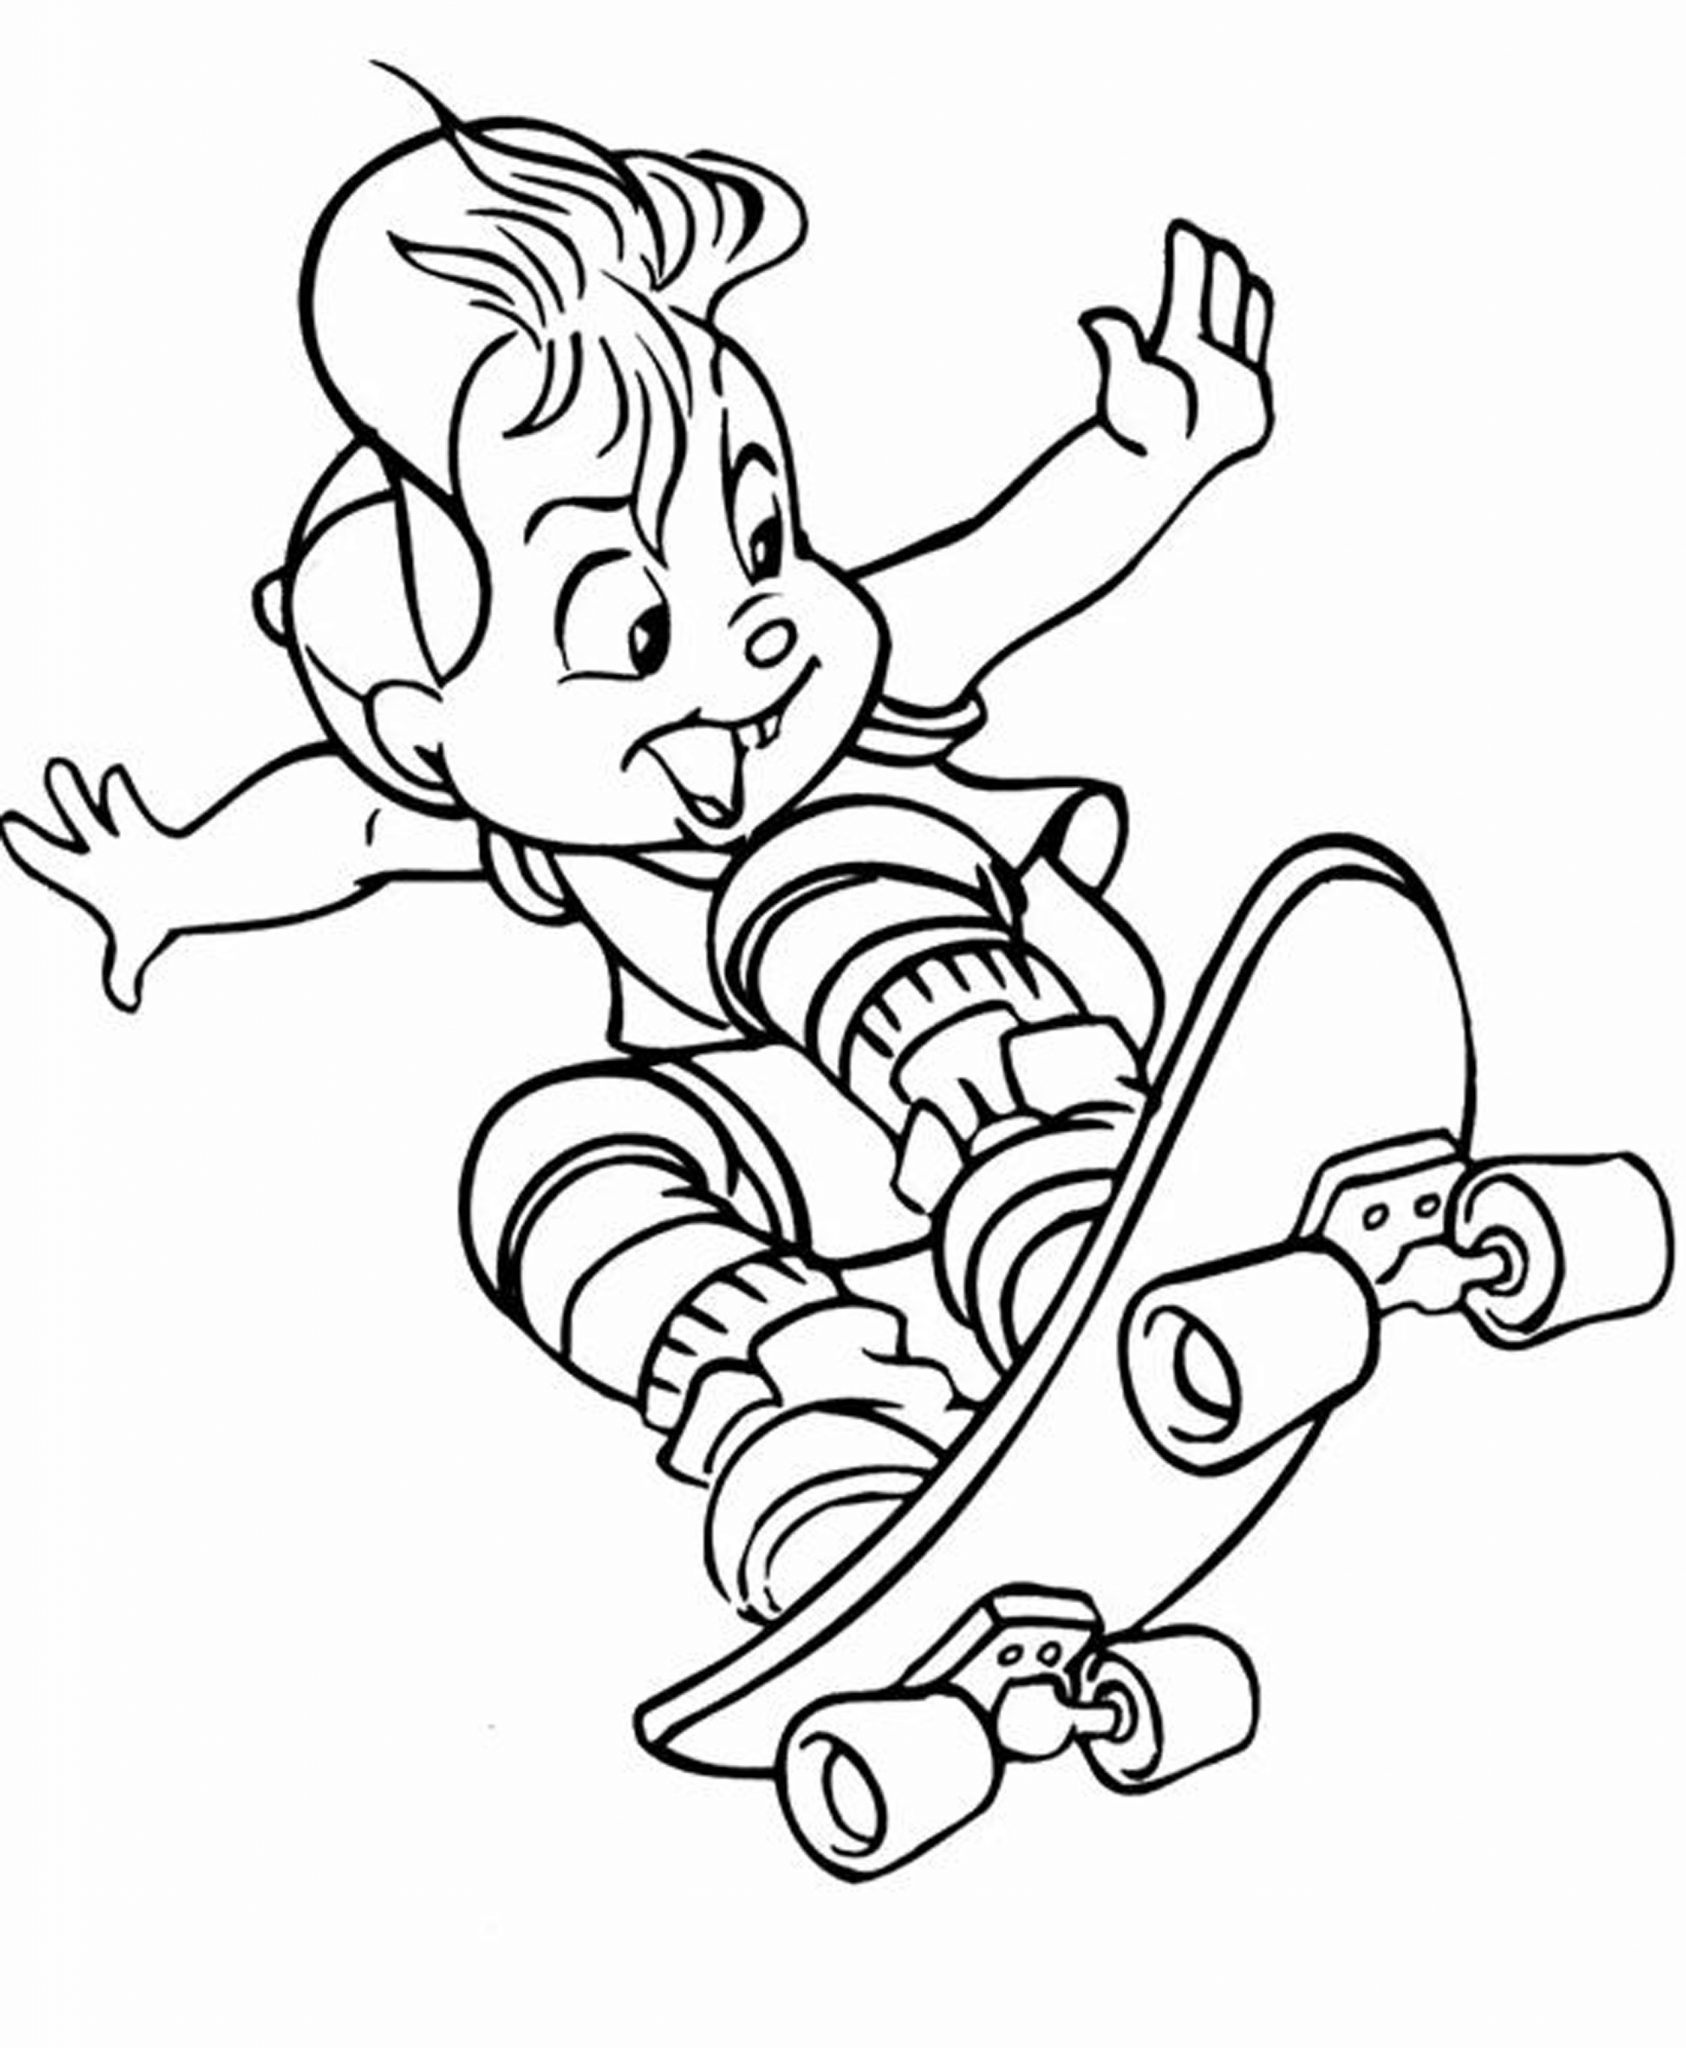 Free Coloring Pages | Skateboard Coloring Pages | 2048x1686